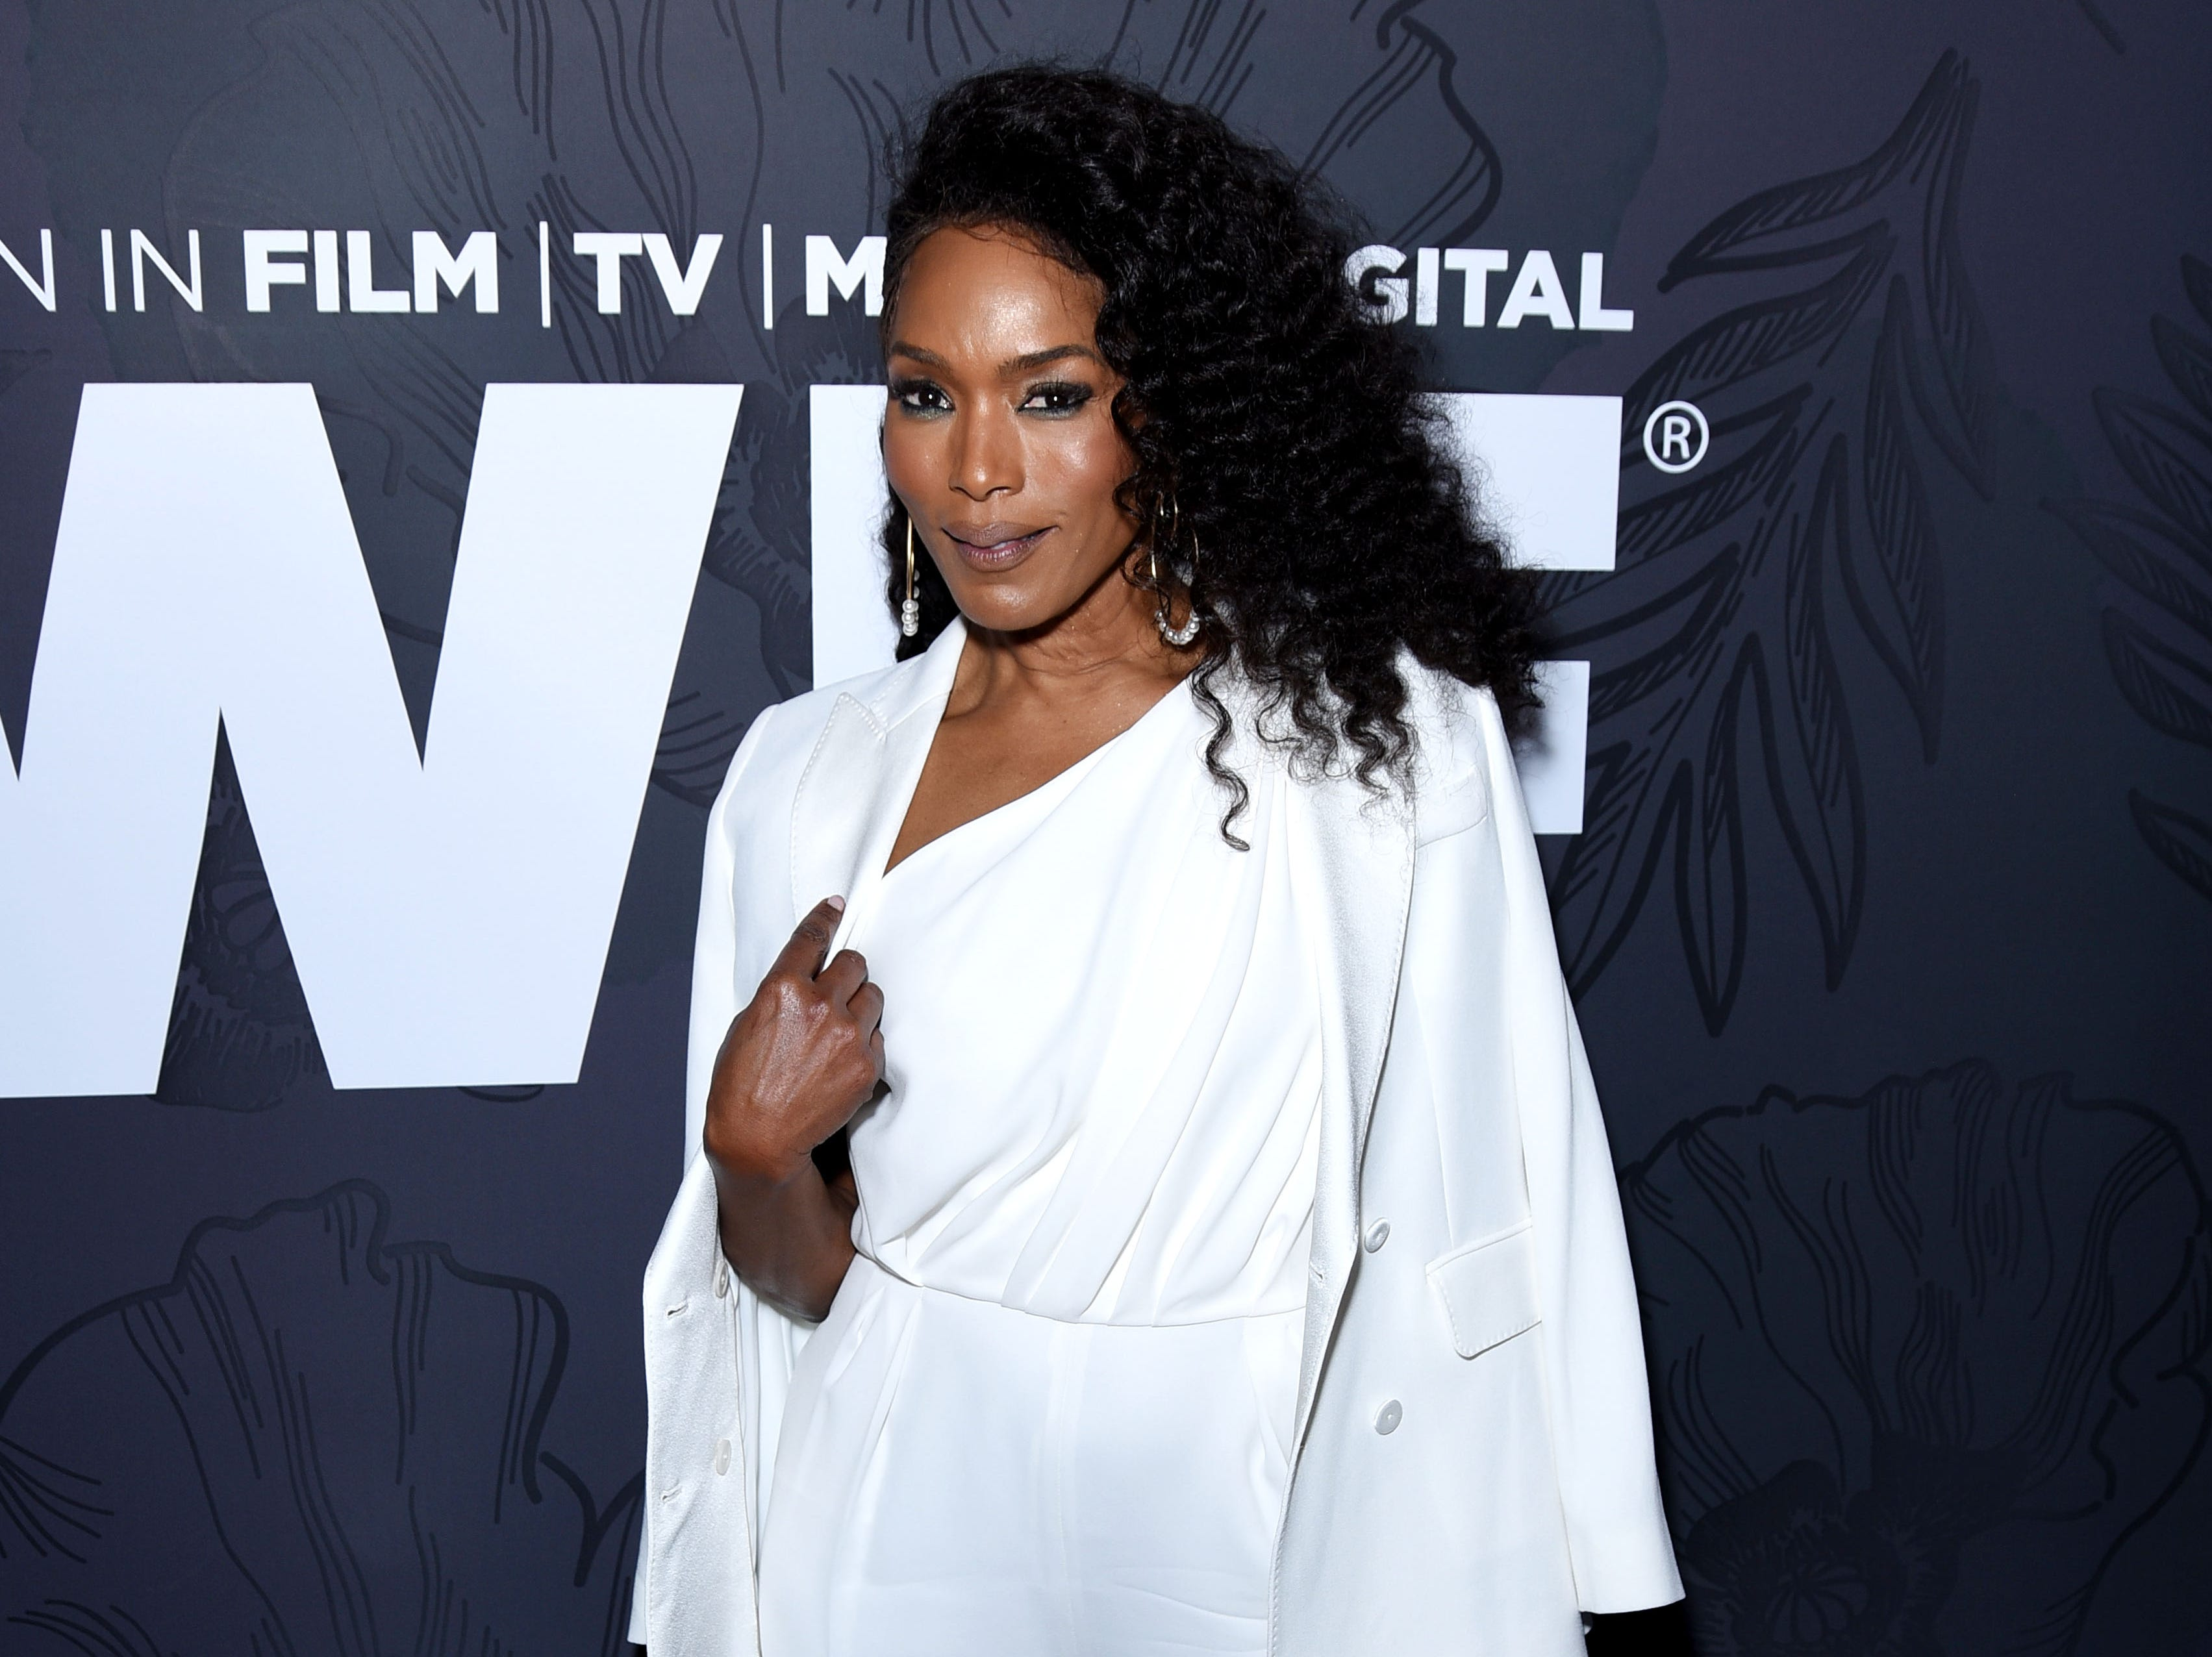 BEVERLY HILLS, CALIFORNIA - FEBRUARY 22: Angela Bassett, wearing Max Mara attends the 12th Annual Women in Film Oscar Nominees Party Presented by Max Mara with additional support from Chloe Wine Collection, Stella Artois and Cadillac at Spring Place on February 22, 2019 in Los Angeles, California. (Photo by Presley Ann/Getty Images for Women In Film) ORG XMIT: 775302553 ORIG FILE ID: 1131512388